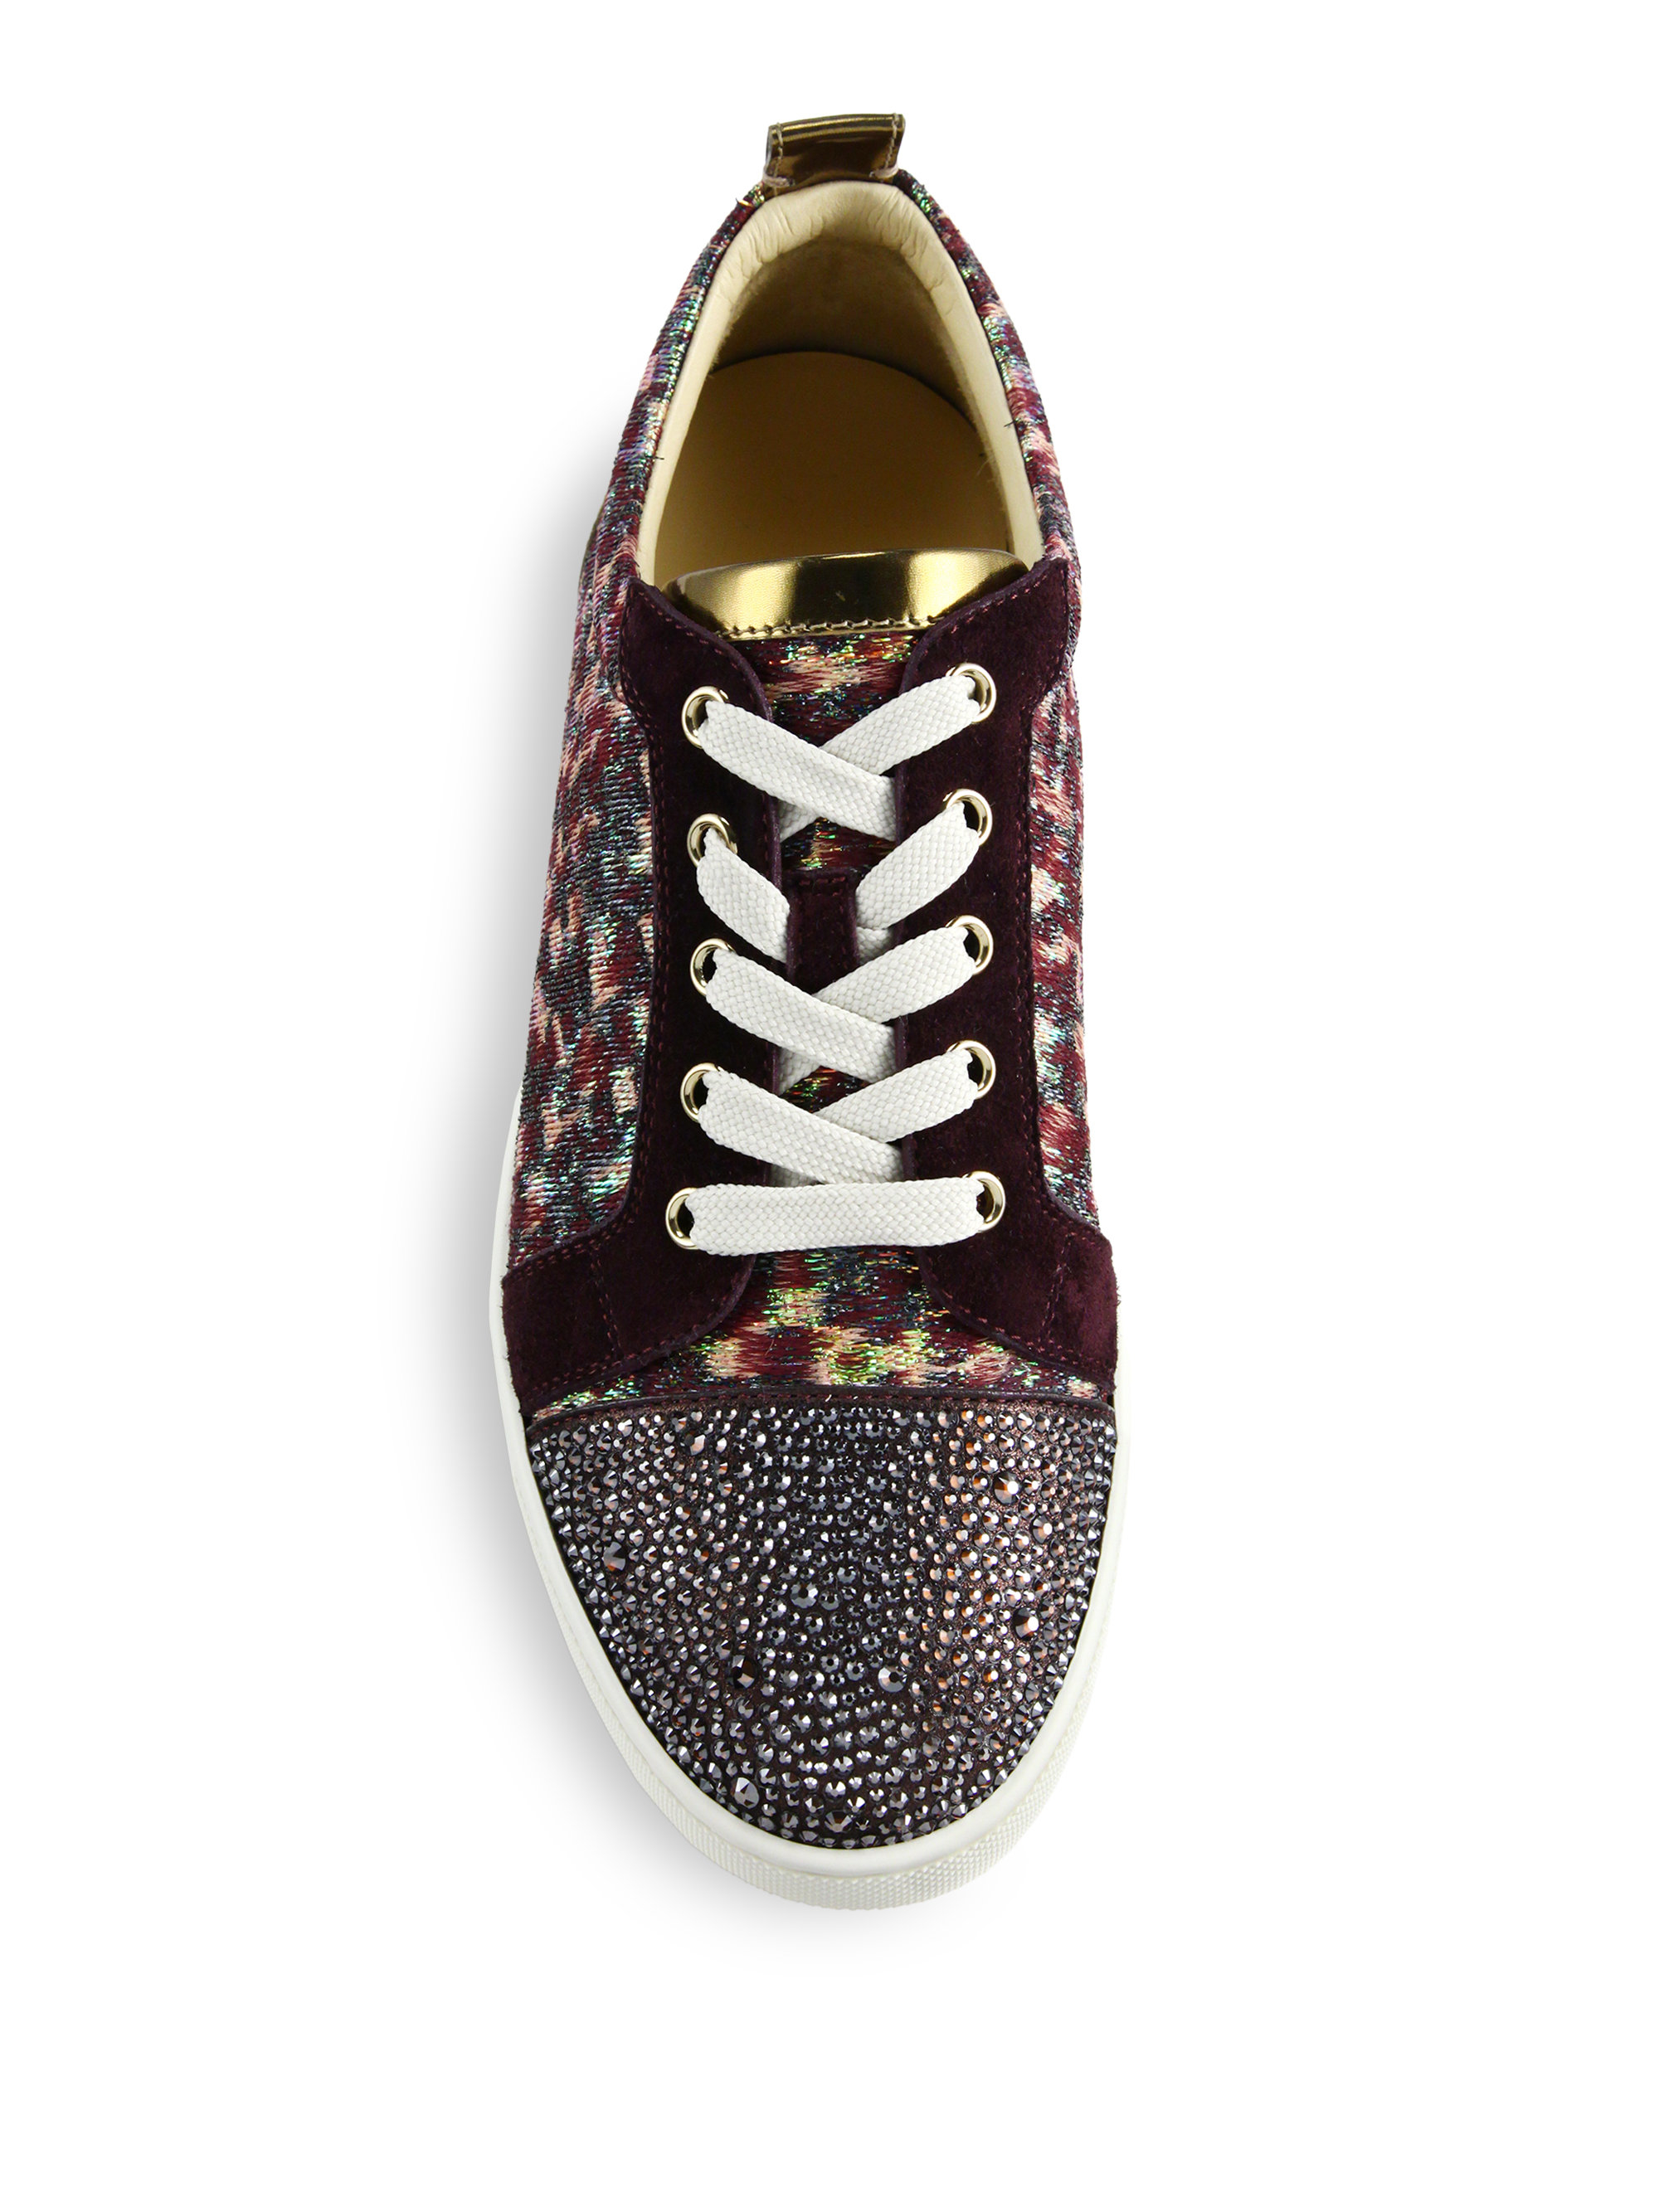 645101877c58 Lyst - Christian Louboutin Gondolastrass Low-top Sneakers in Purple